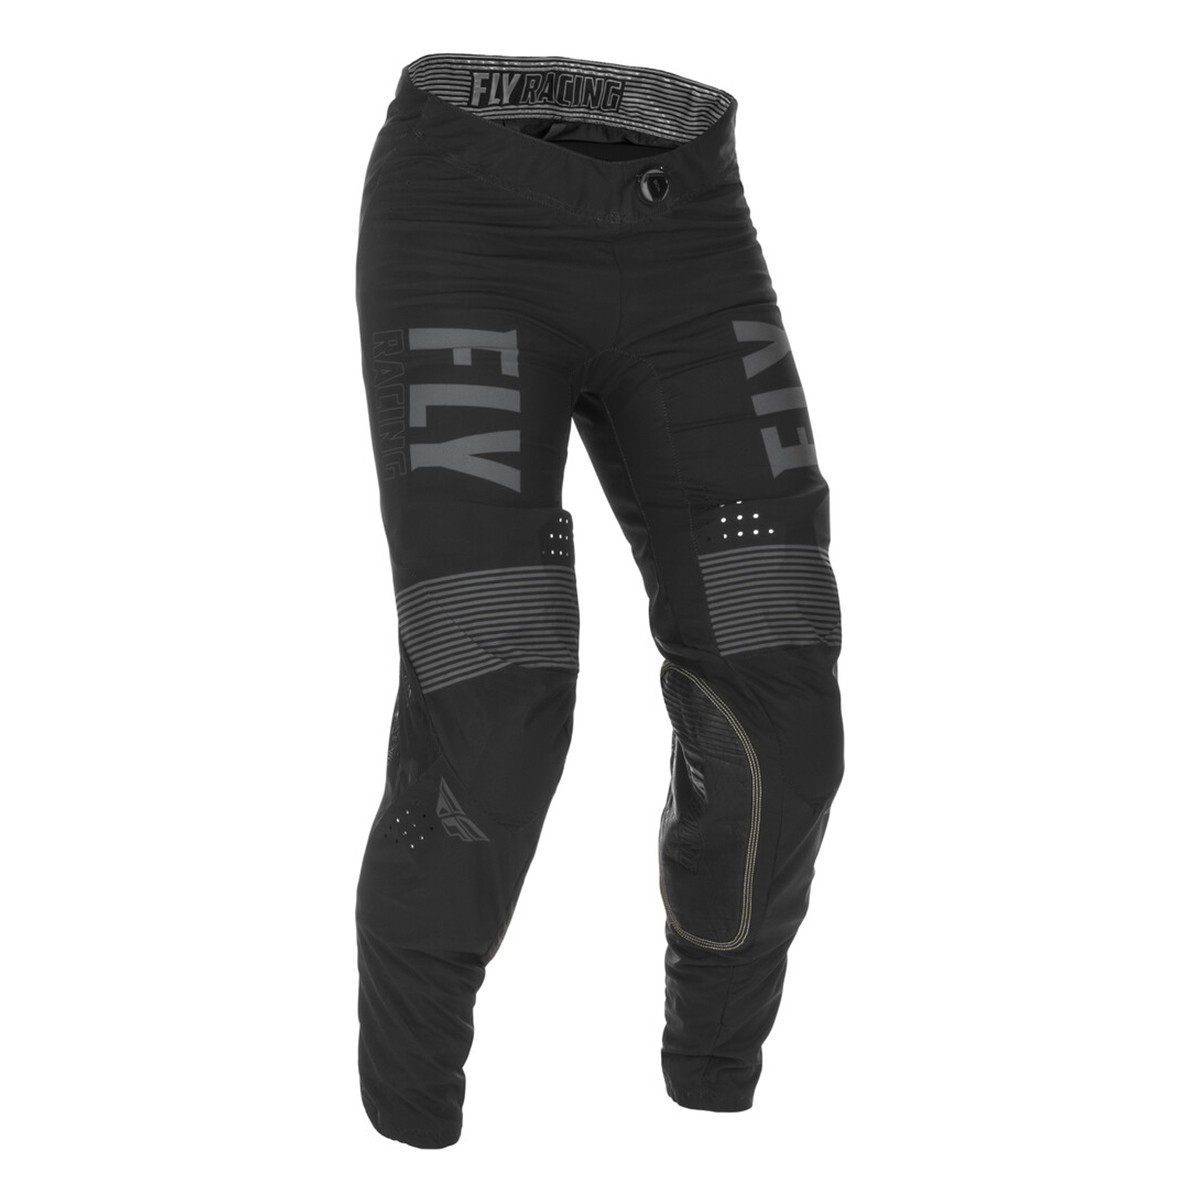 FLY LITE 2021 PANTS